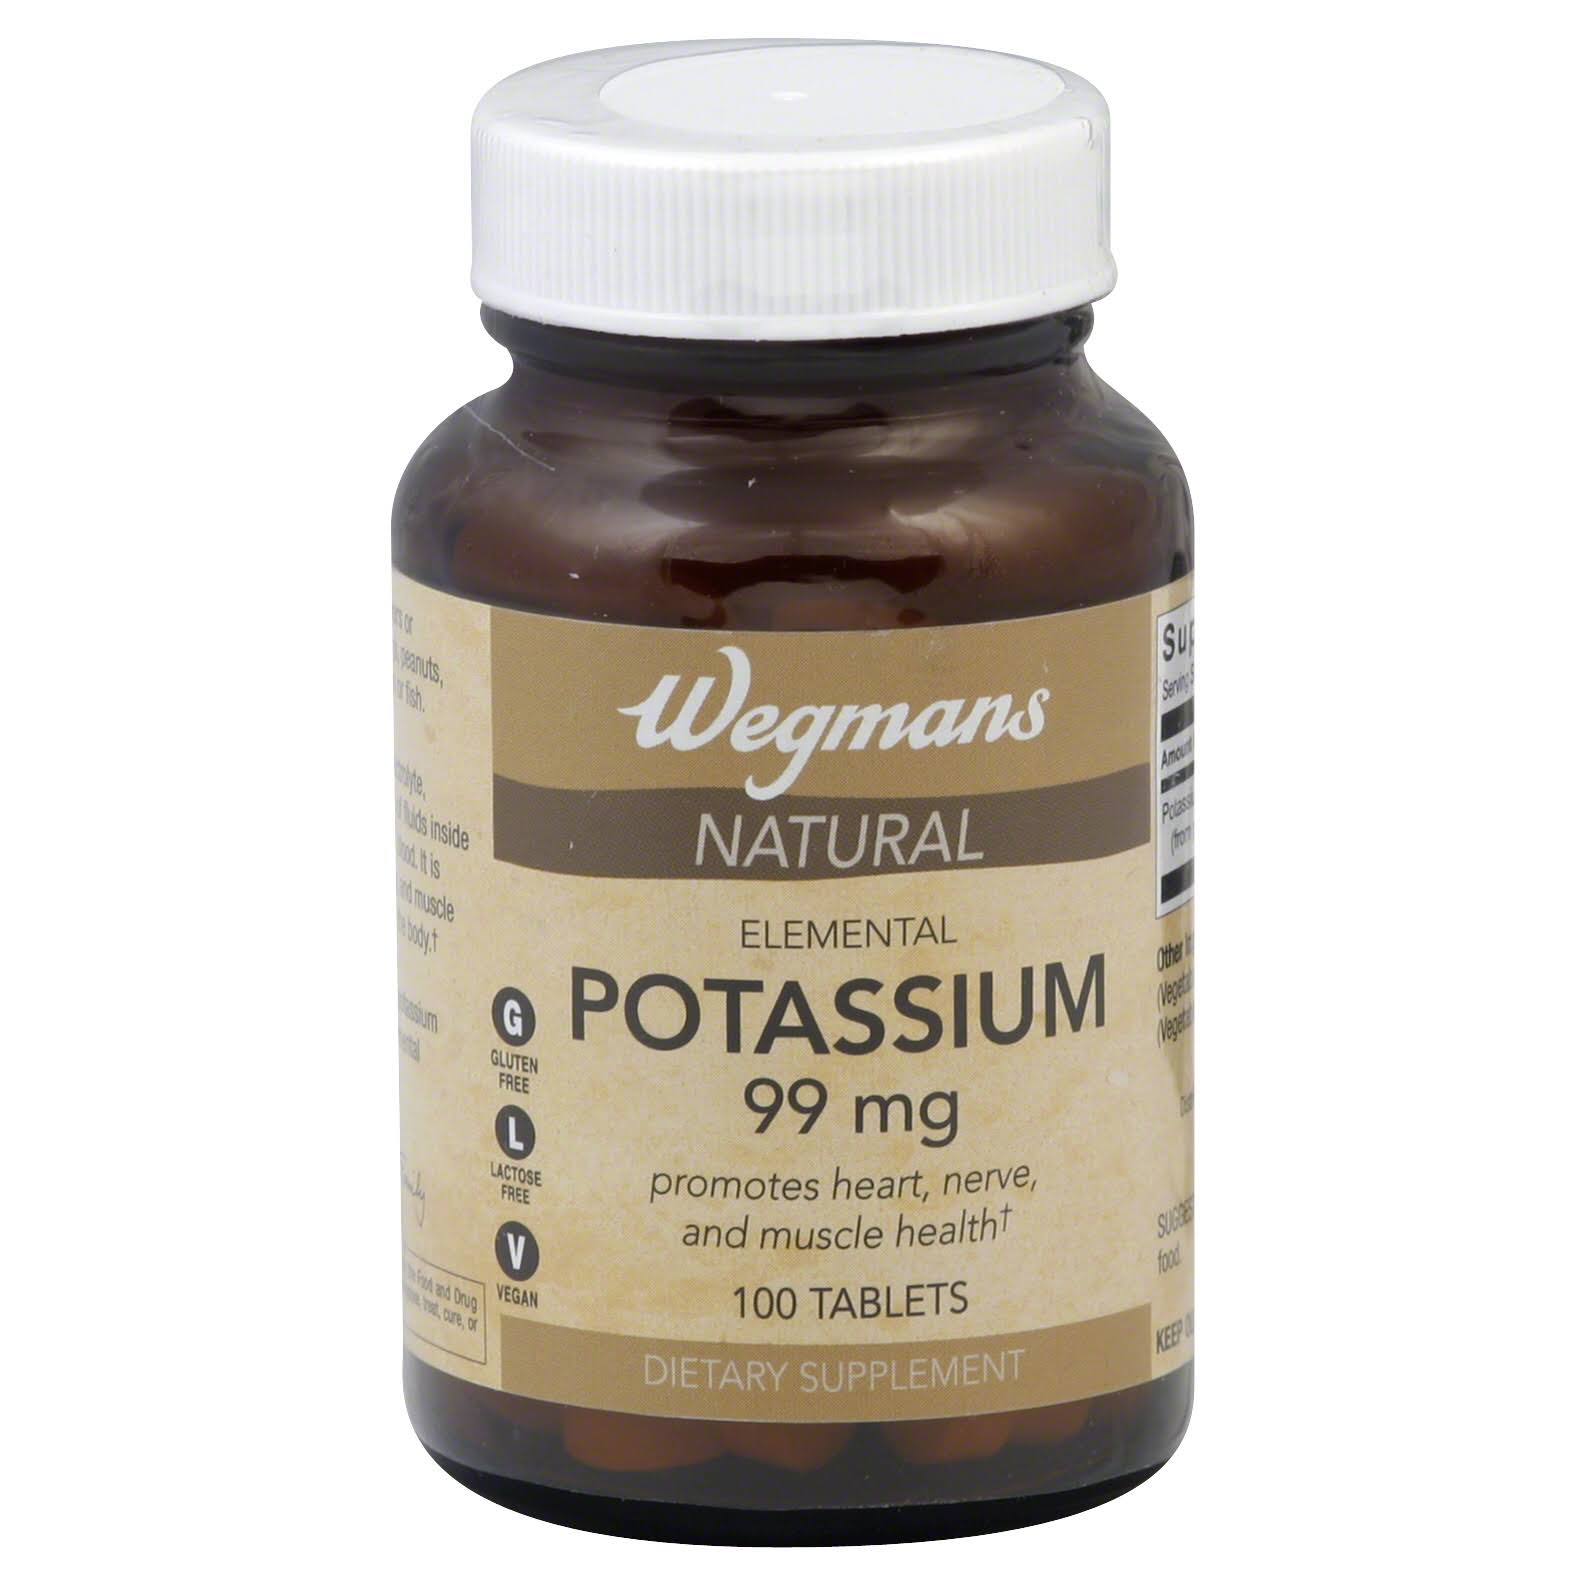 Wegmans Potassium, Natural, 99 mg, Tablets - 100 tablets